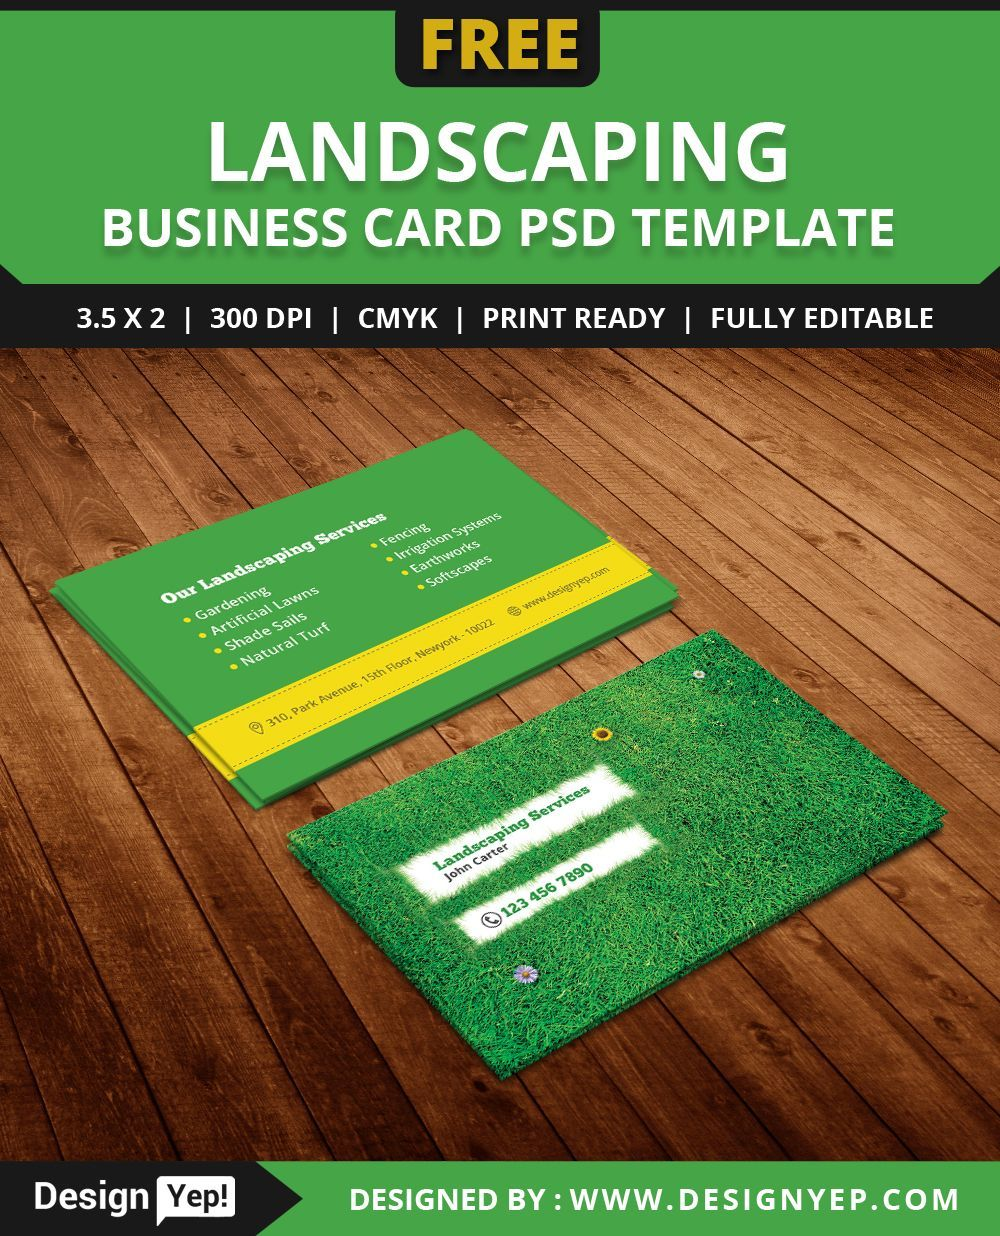 Free Landscaping Business Card Template Psd Free Business With Regard To Lan Lawn Care Business Cards Landscaping Business Cards Free Business Card Templates